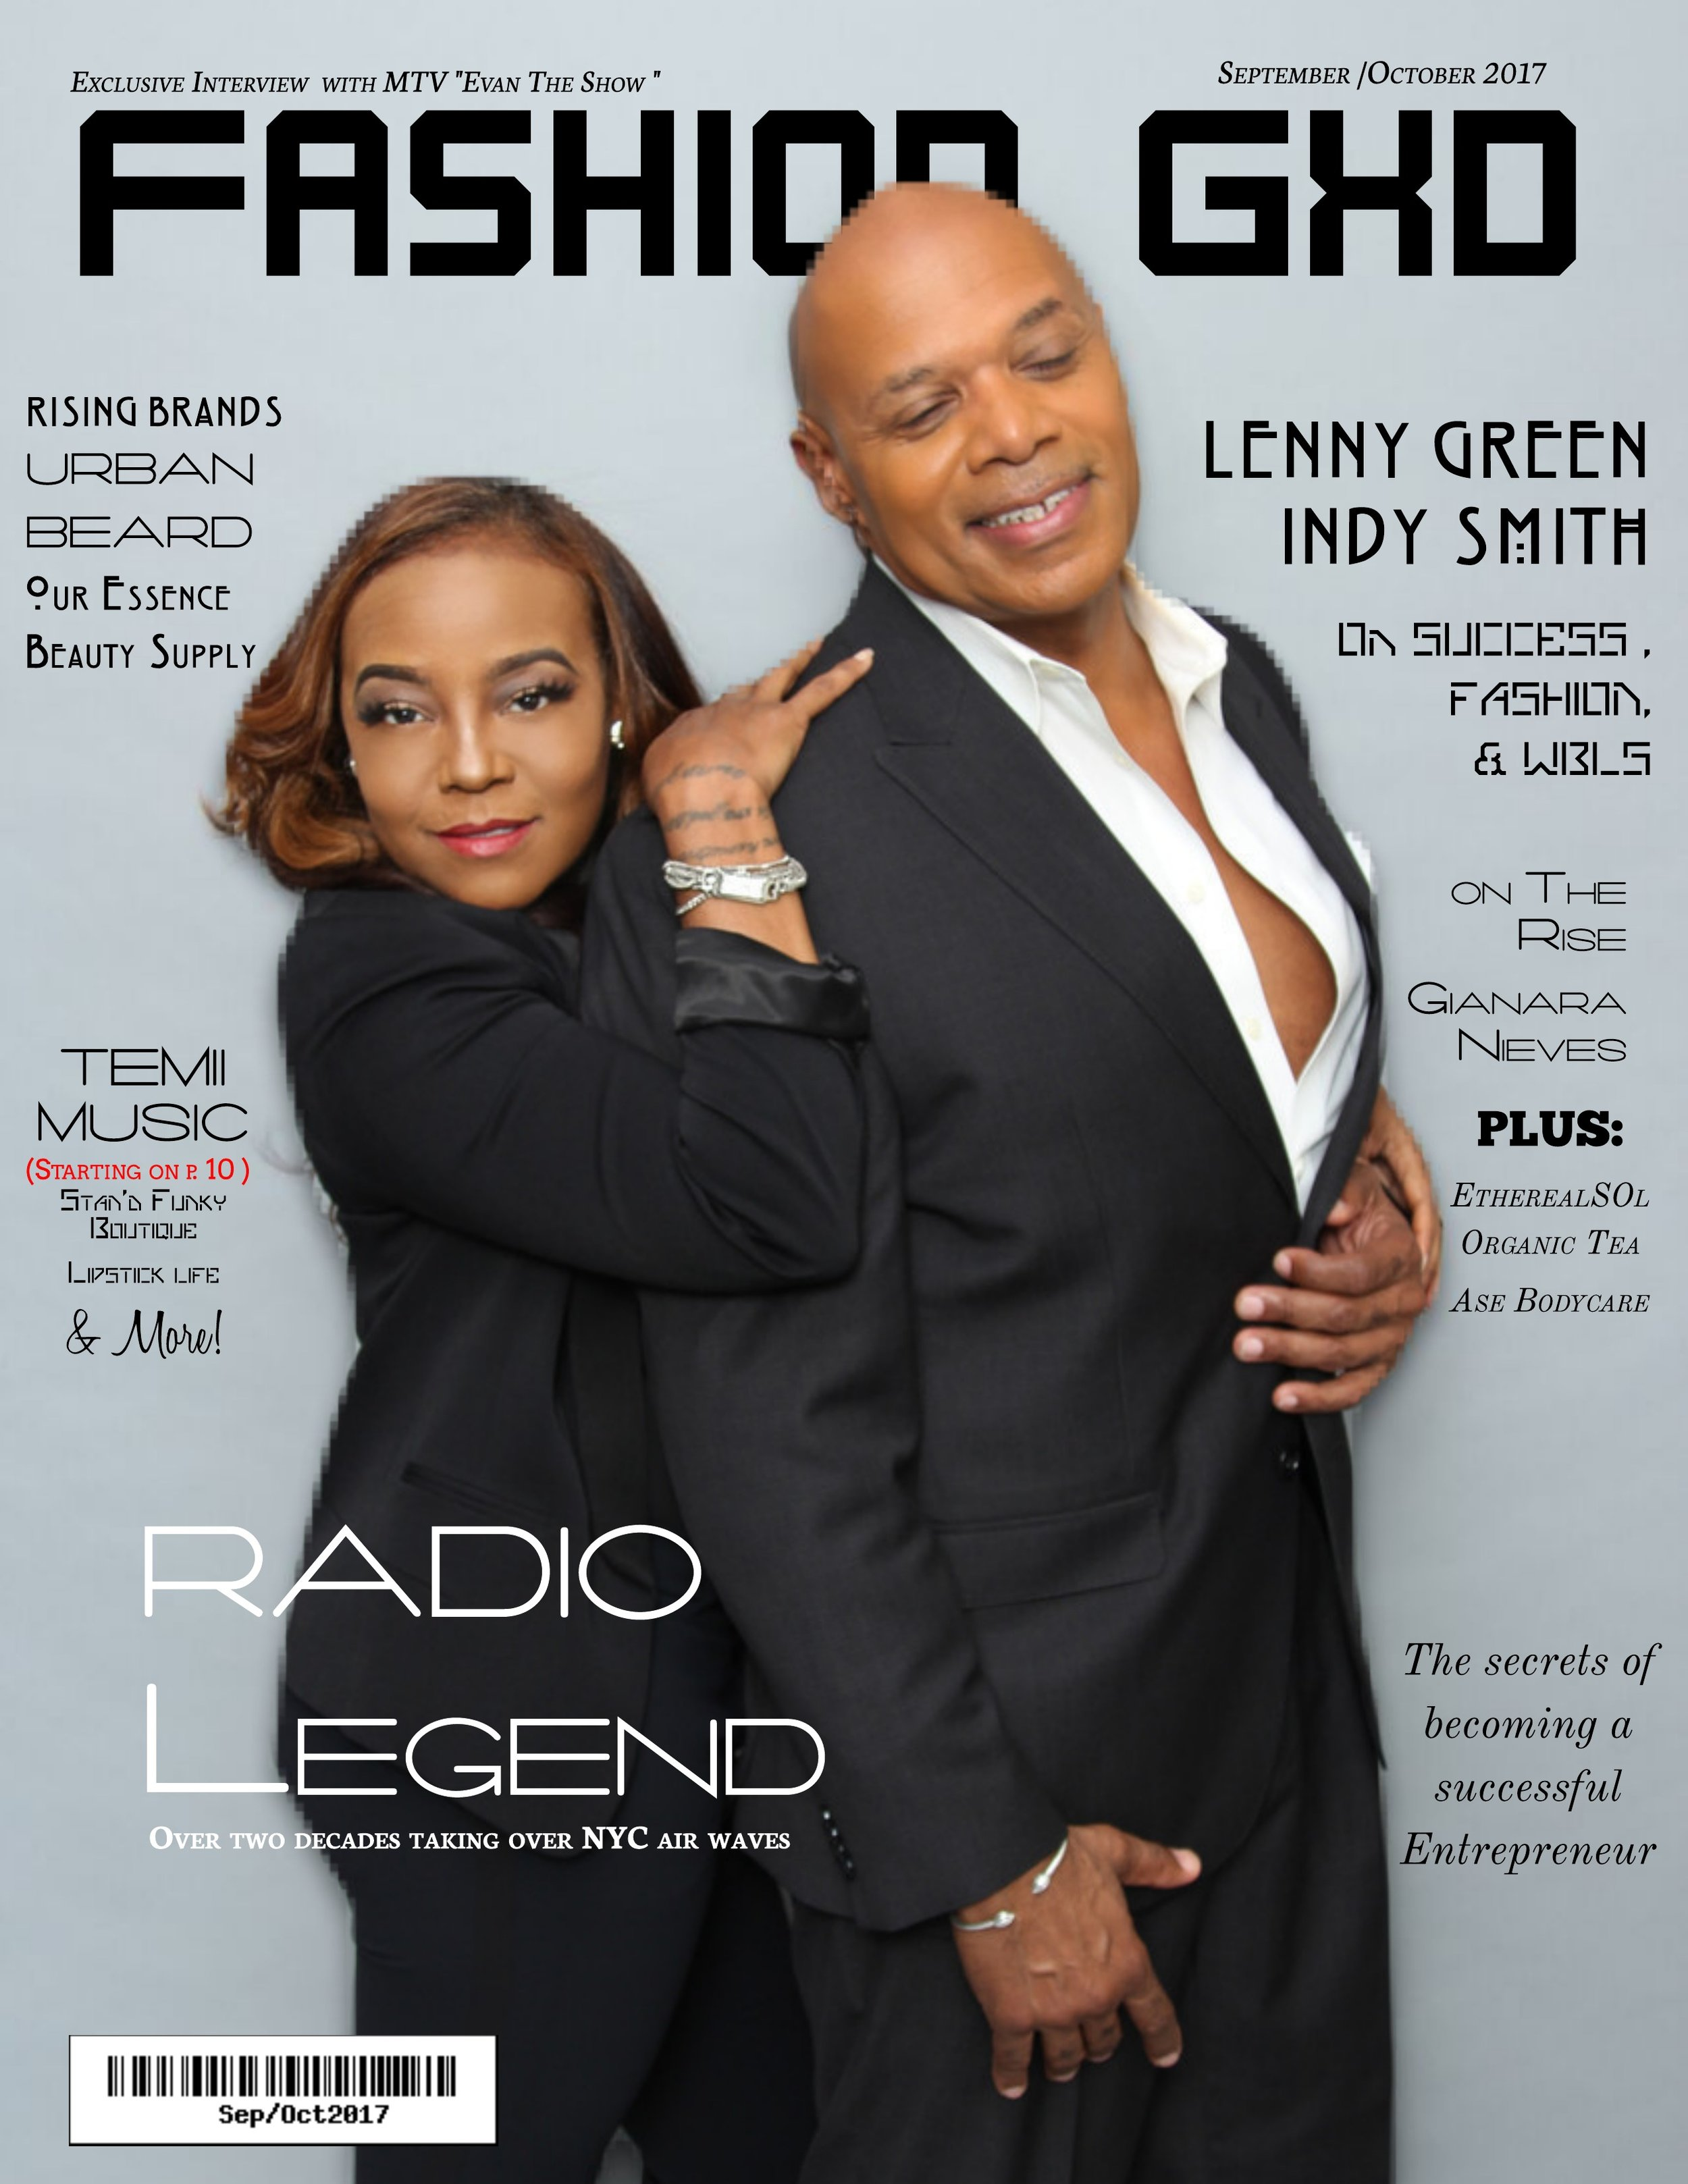 Radio Icon   Lenny Green   of 107.5 WBLS & Author   Indy Smith   Cover Fashion Gxd Magazine September/October 2017 Cover Issue  Photography By : Notorious Photos Makeup By : Carrie Kimora , Stylist : Moon Iciania & Jasmine Hill Carter